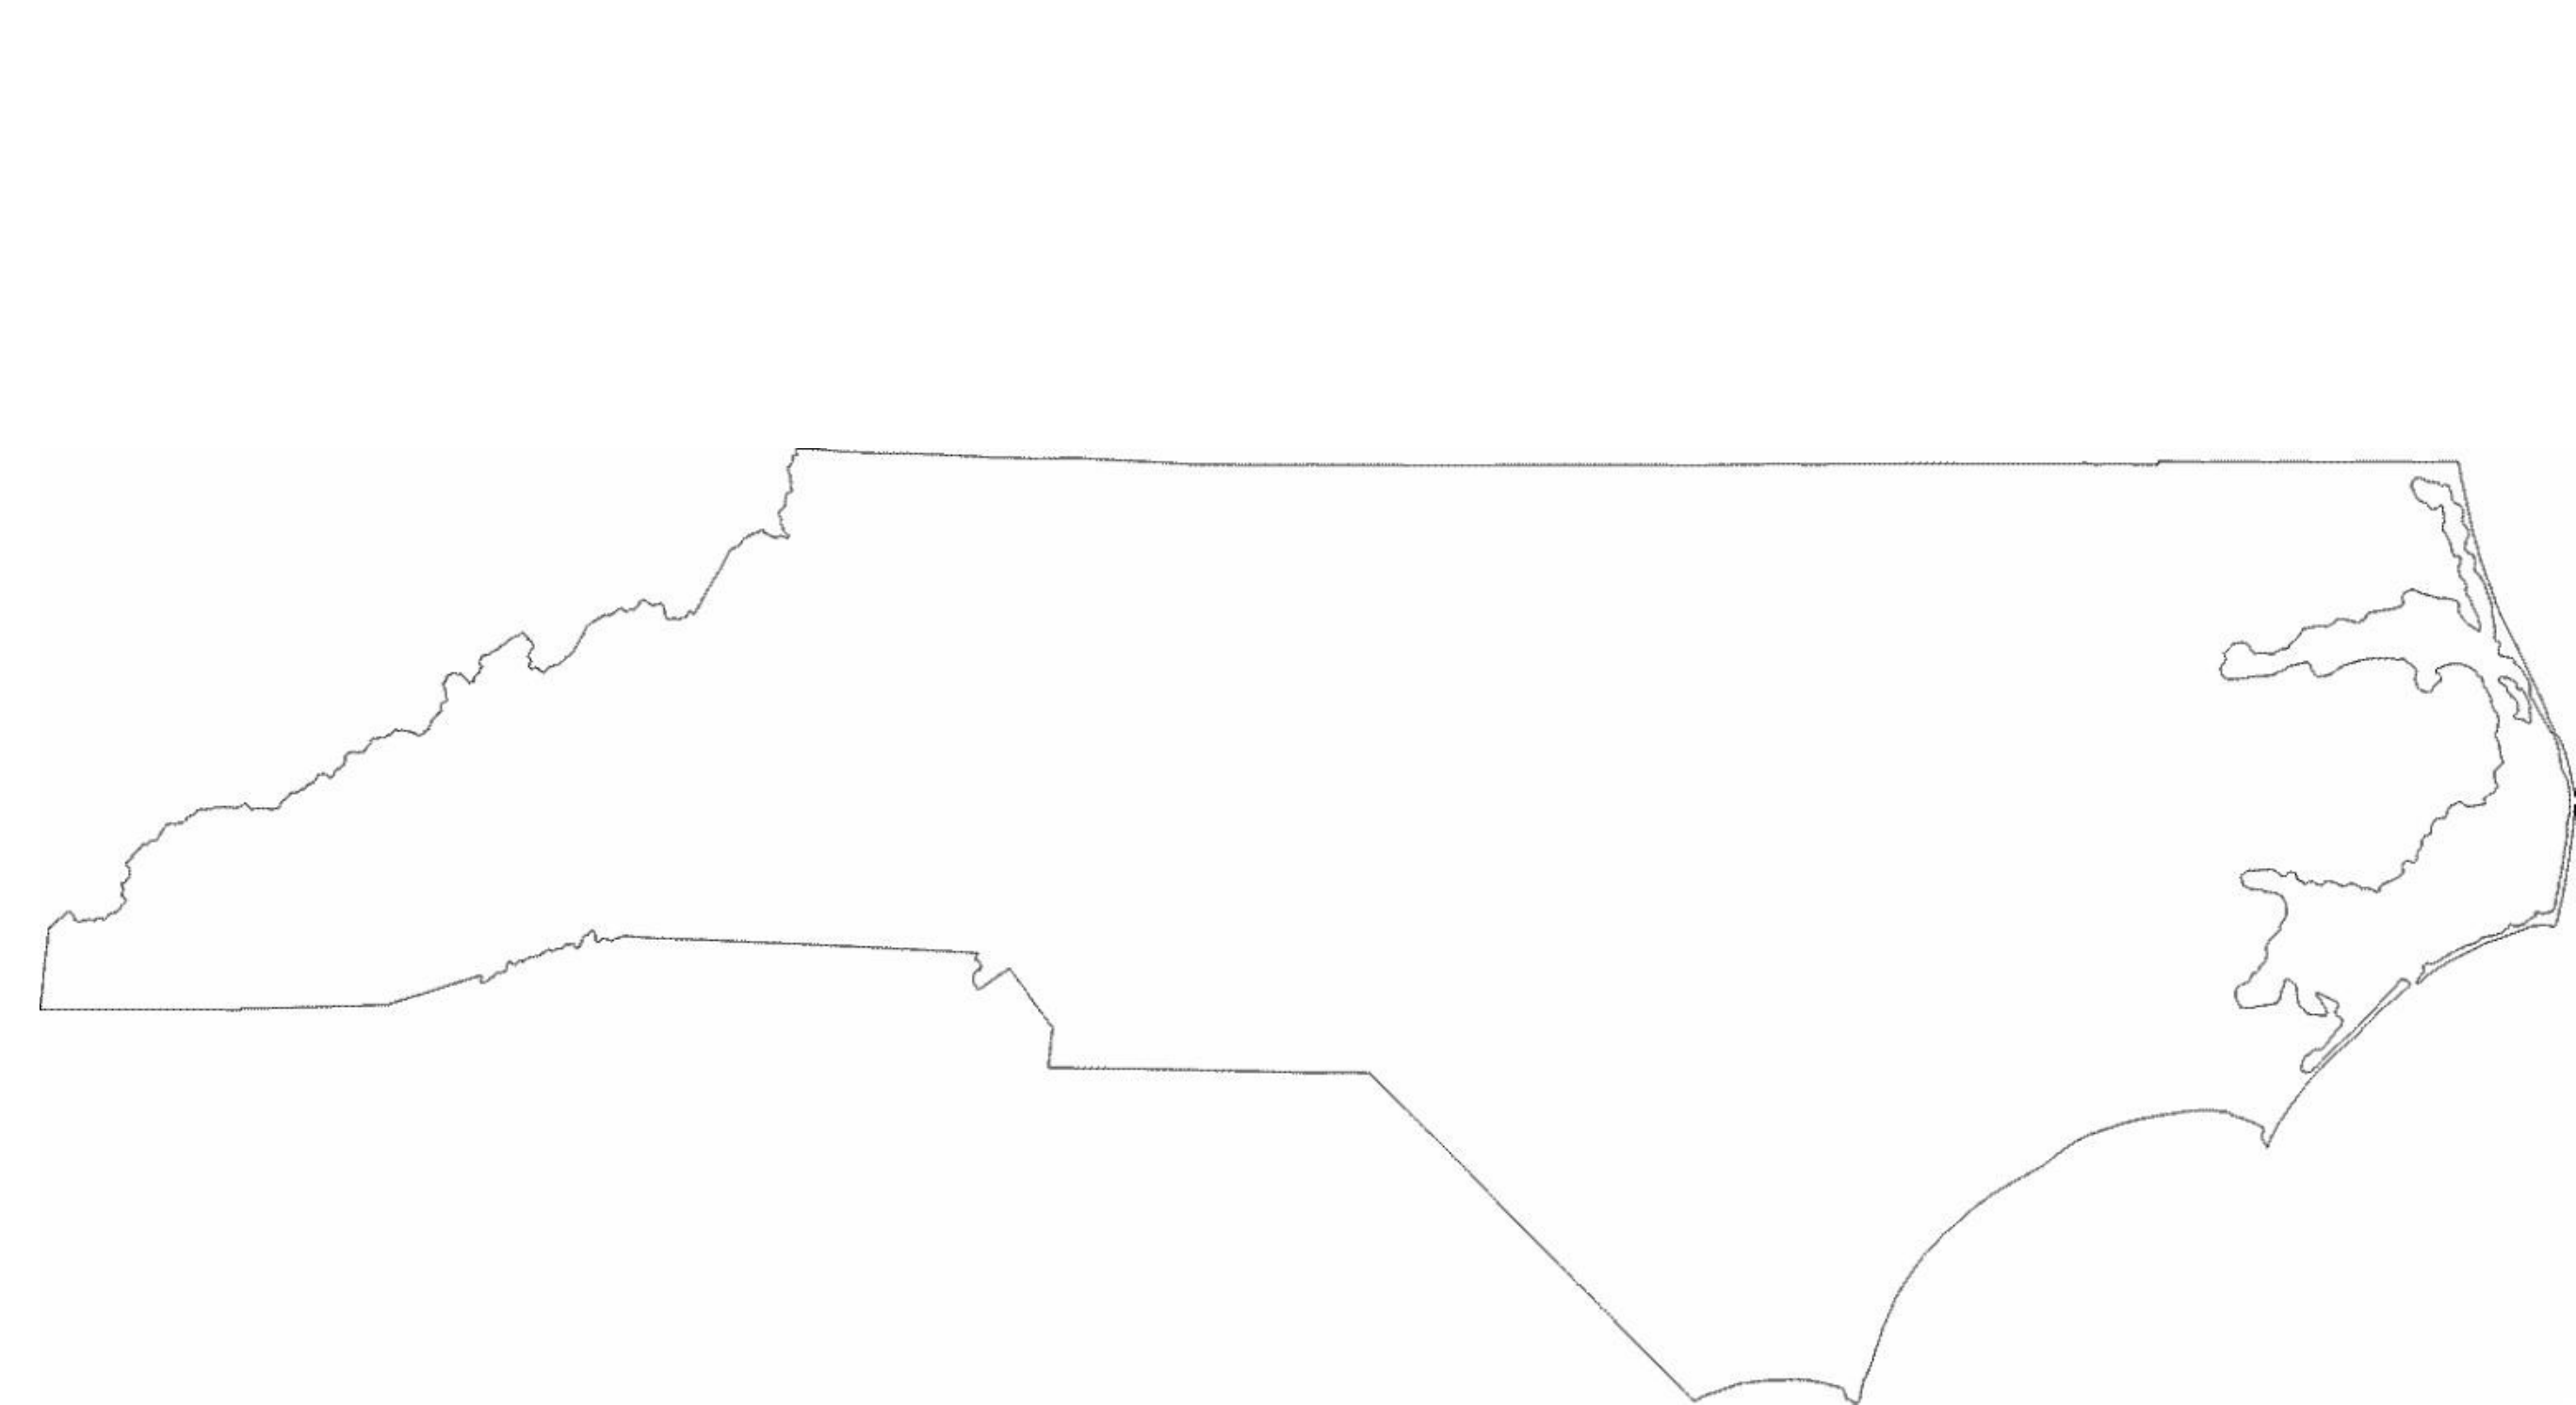 North Carolina State Outline Map Free Download